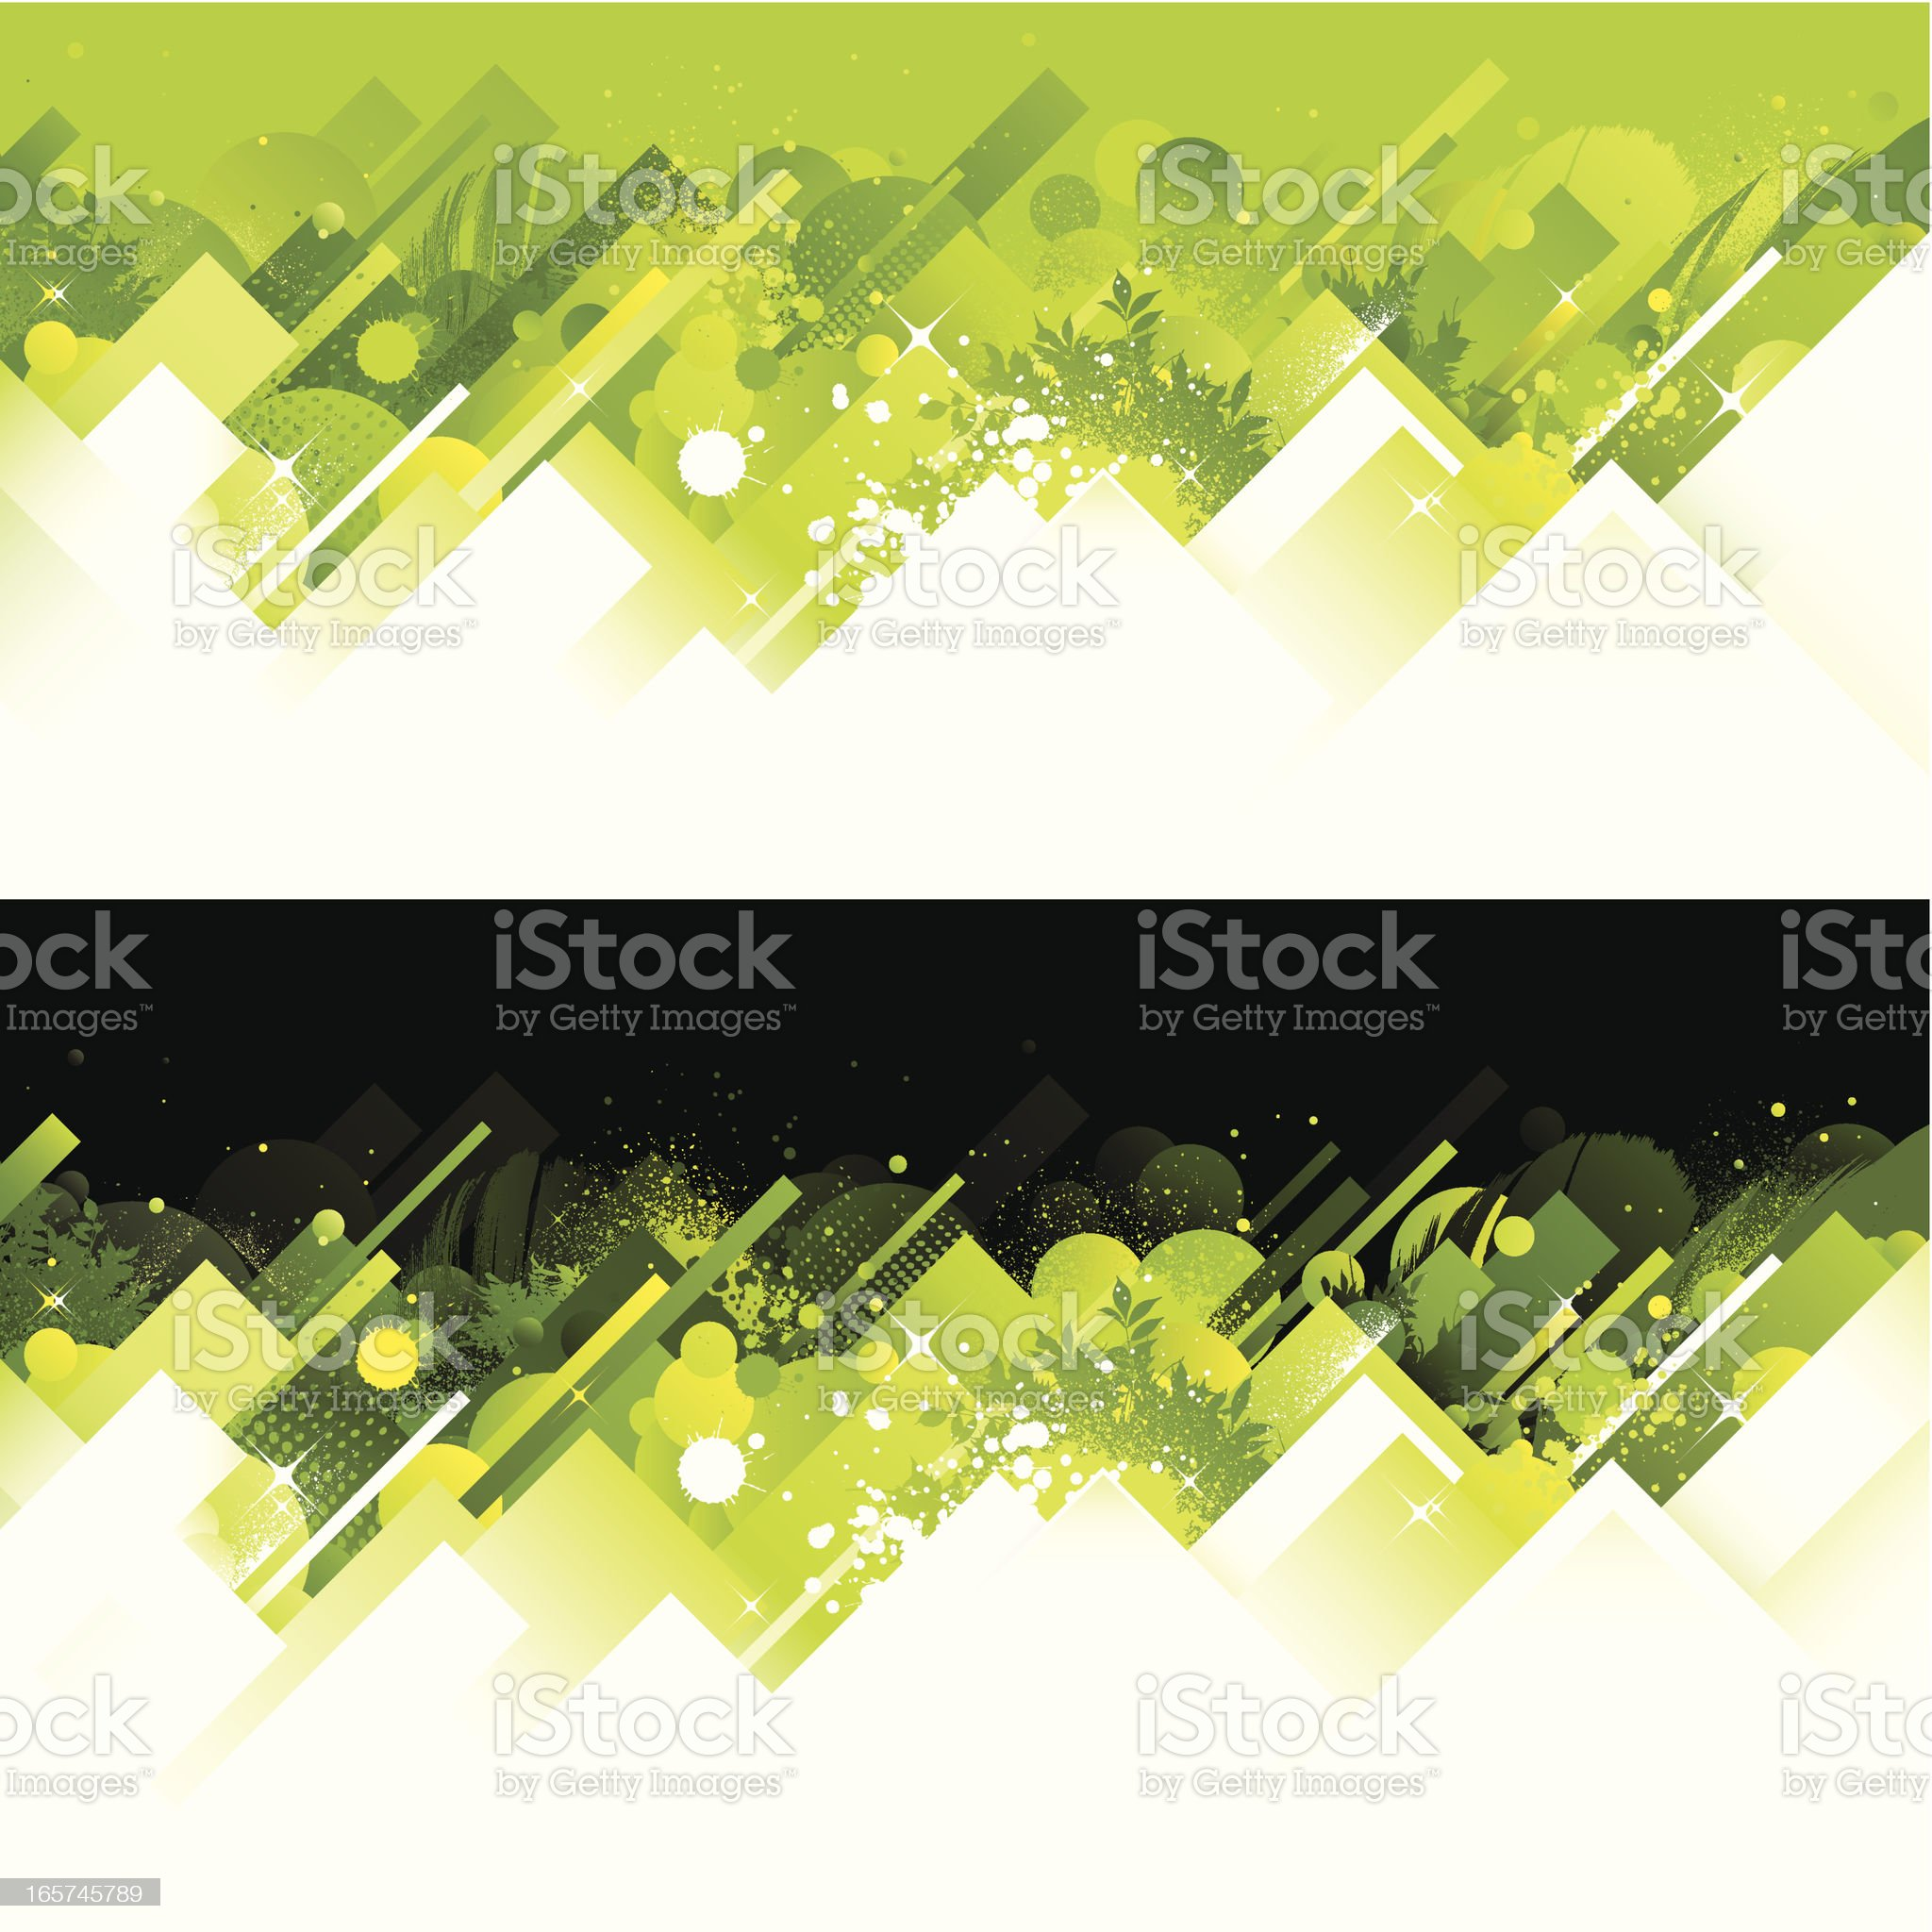 Abstract green backgrounds royalty-free stock vector art